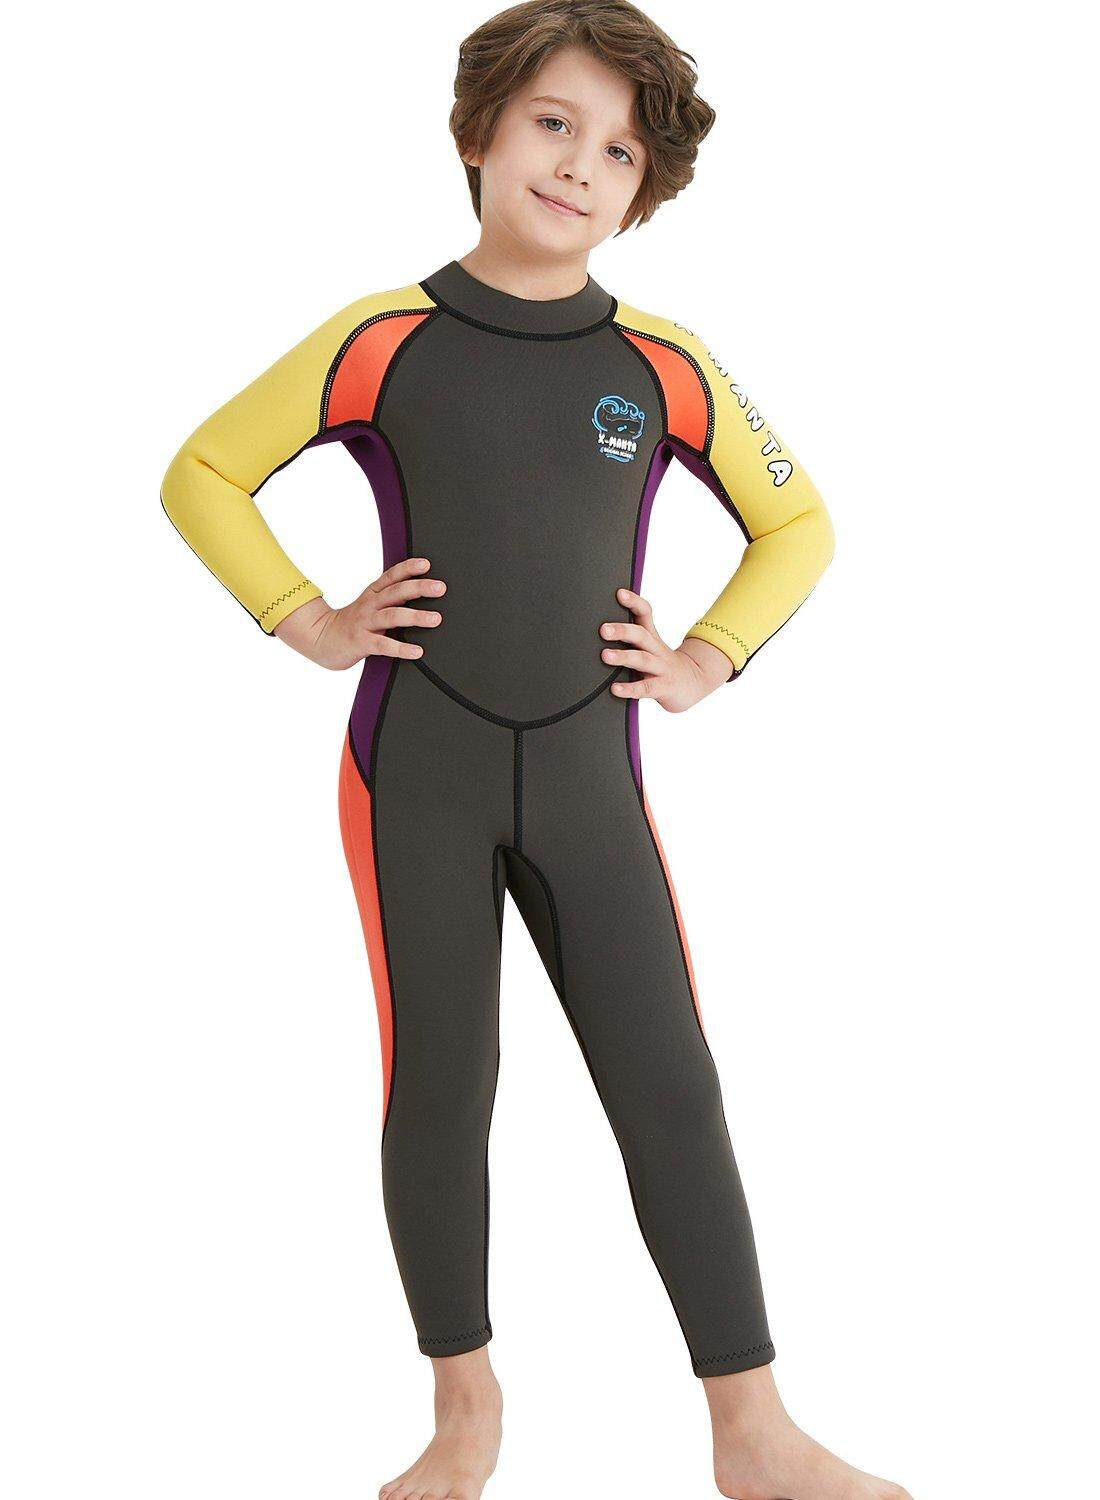 d96b6bef41 DIVE & SAIL Kids Boys 2.5mm Wetsuit Long Sleeve One Piece UV Protection  Thermal Swimsuit